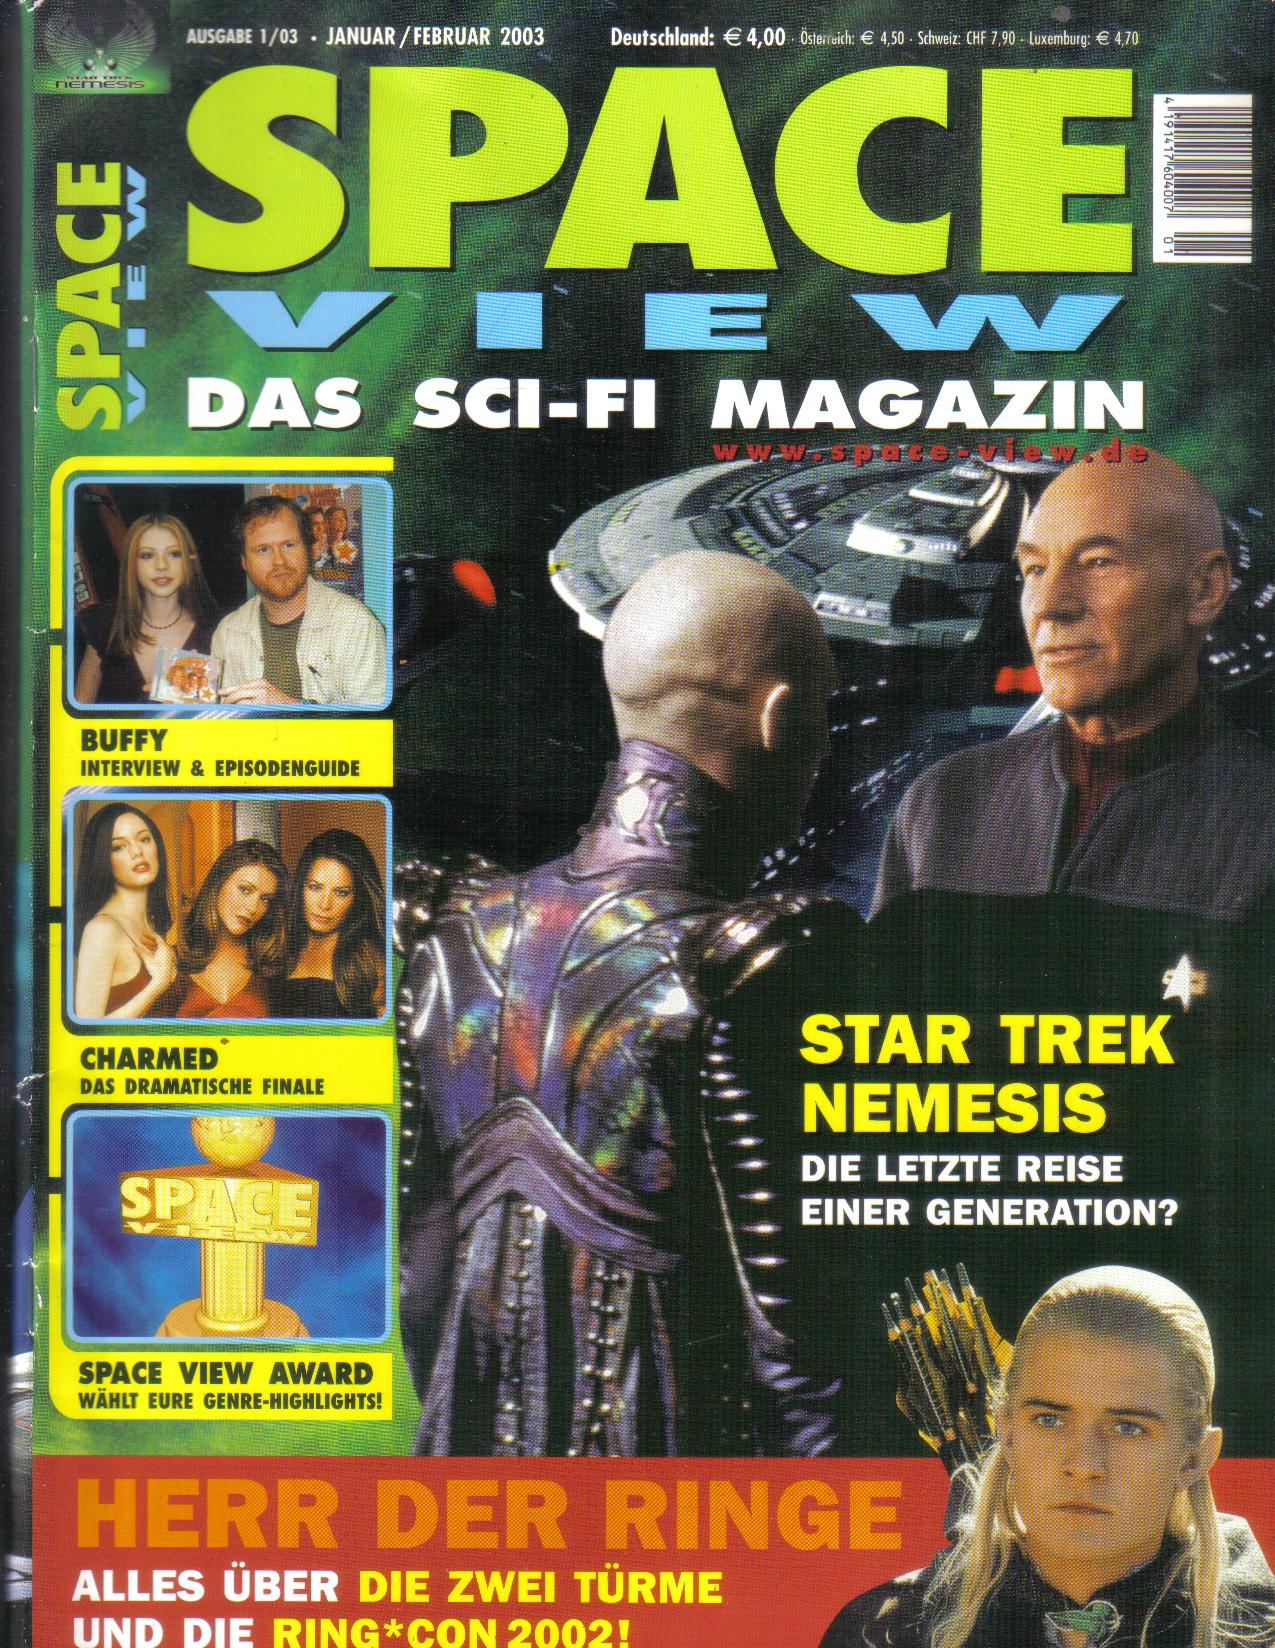 Space View  Das Sci-FI Magazin...2003